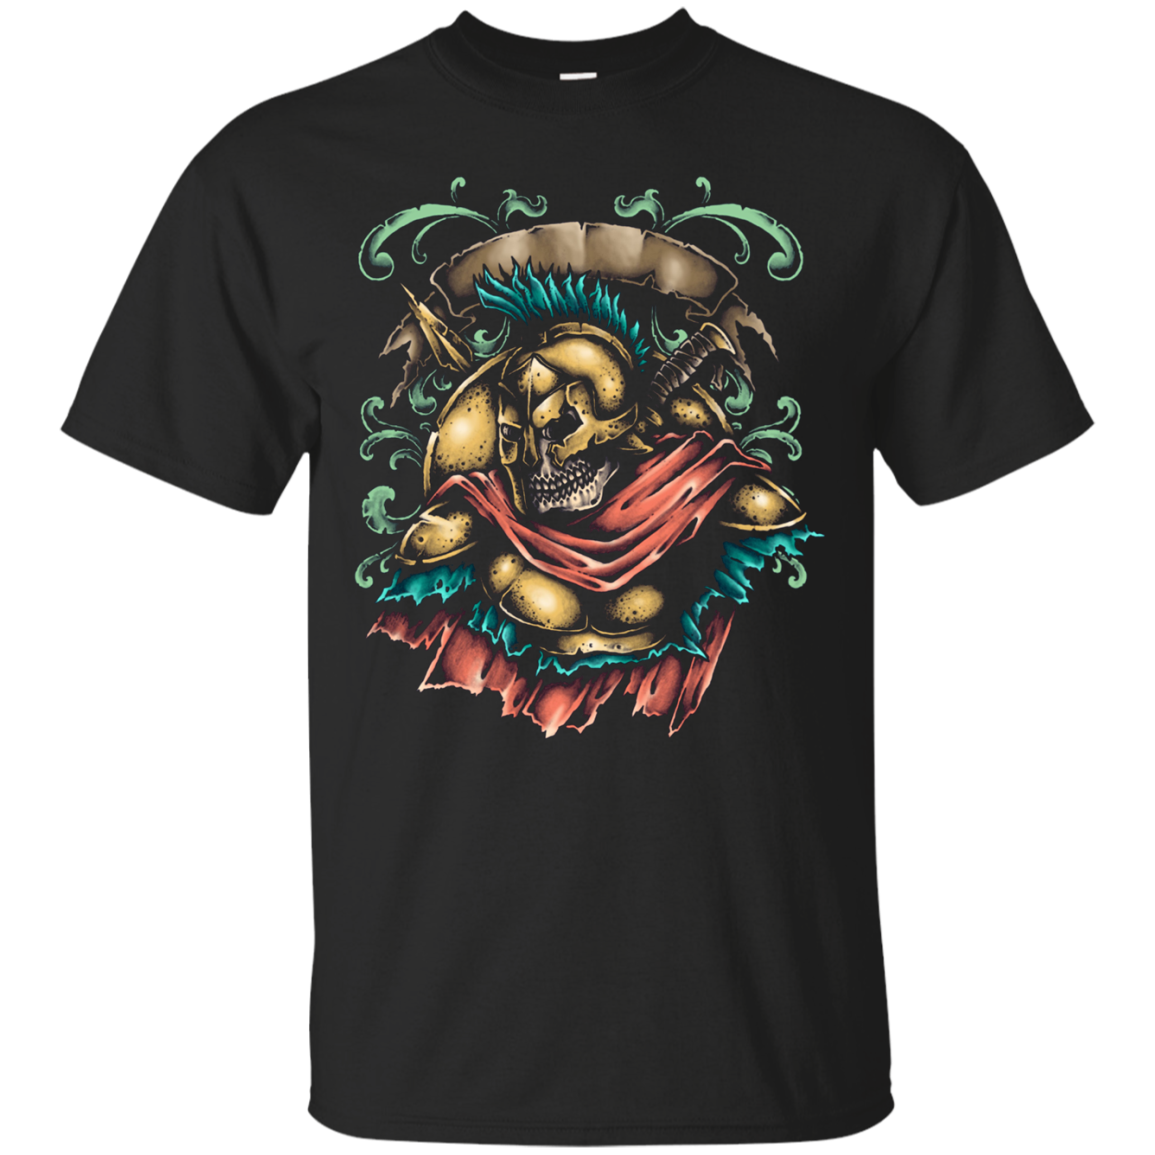 Sparta Greece - Warrior Home Skeleton Graphic Tee